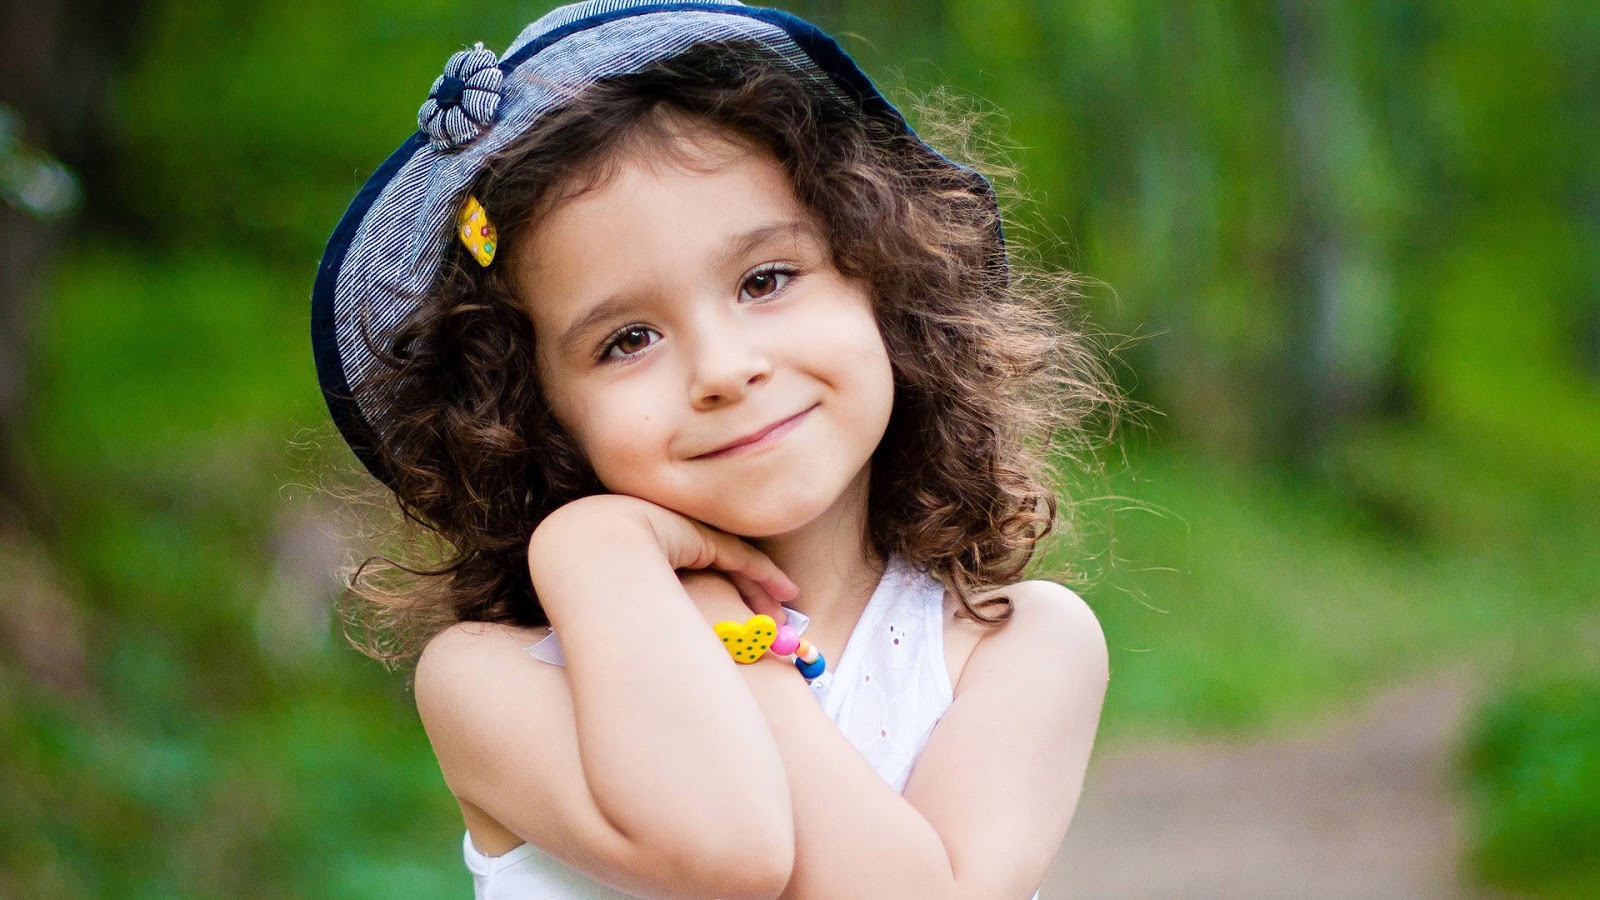 Cute Little Girl Wallpaper 1600x900 68115